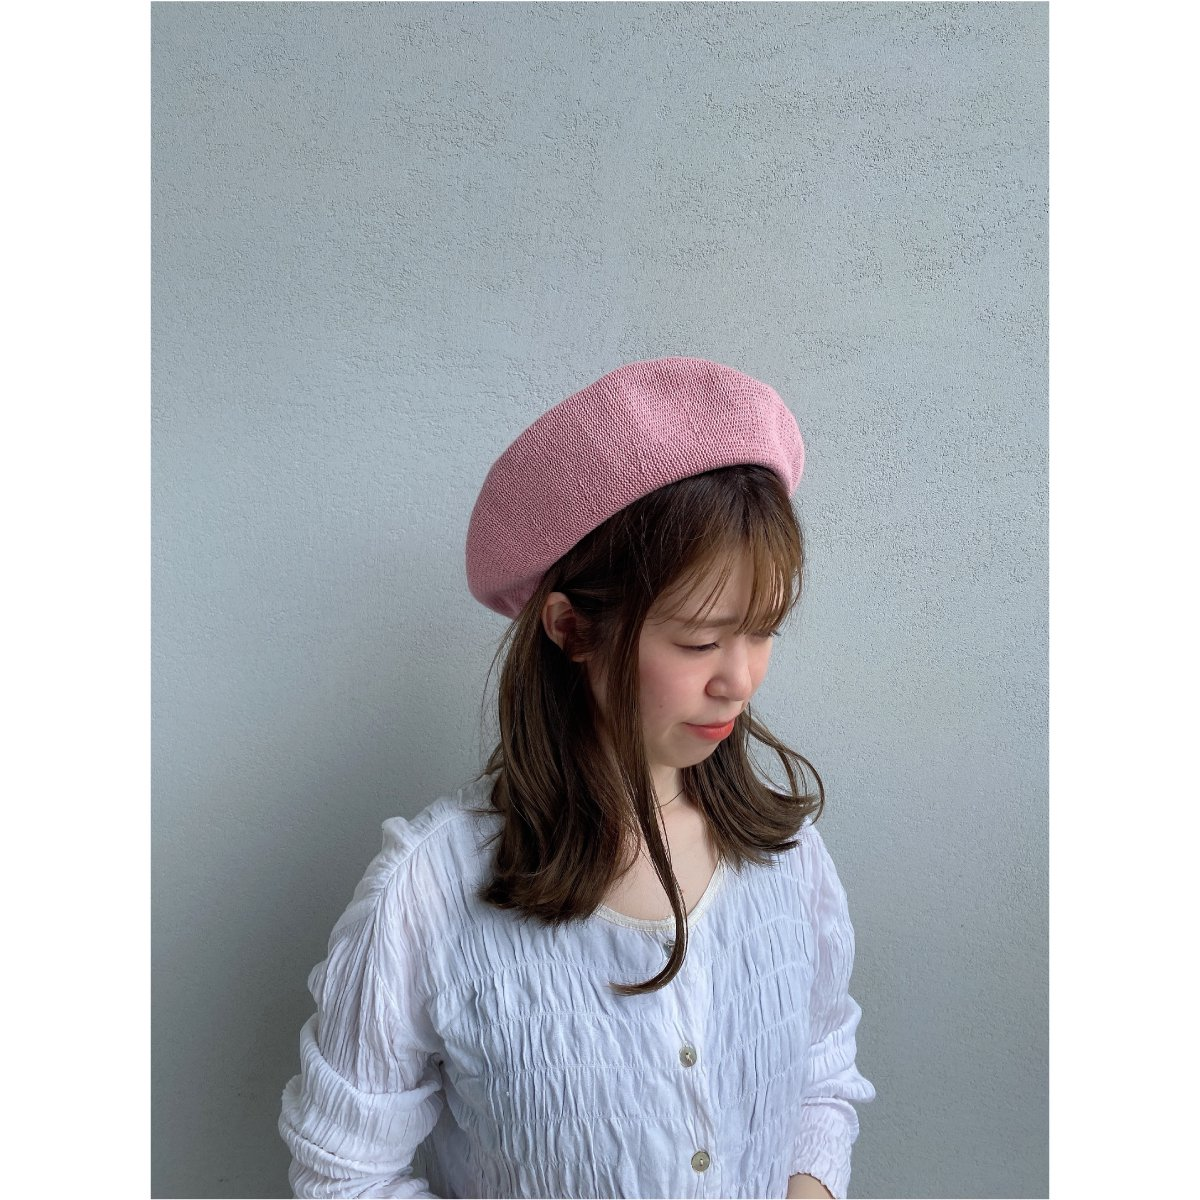 Sophie Thermo Beret 2 詳細画像6